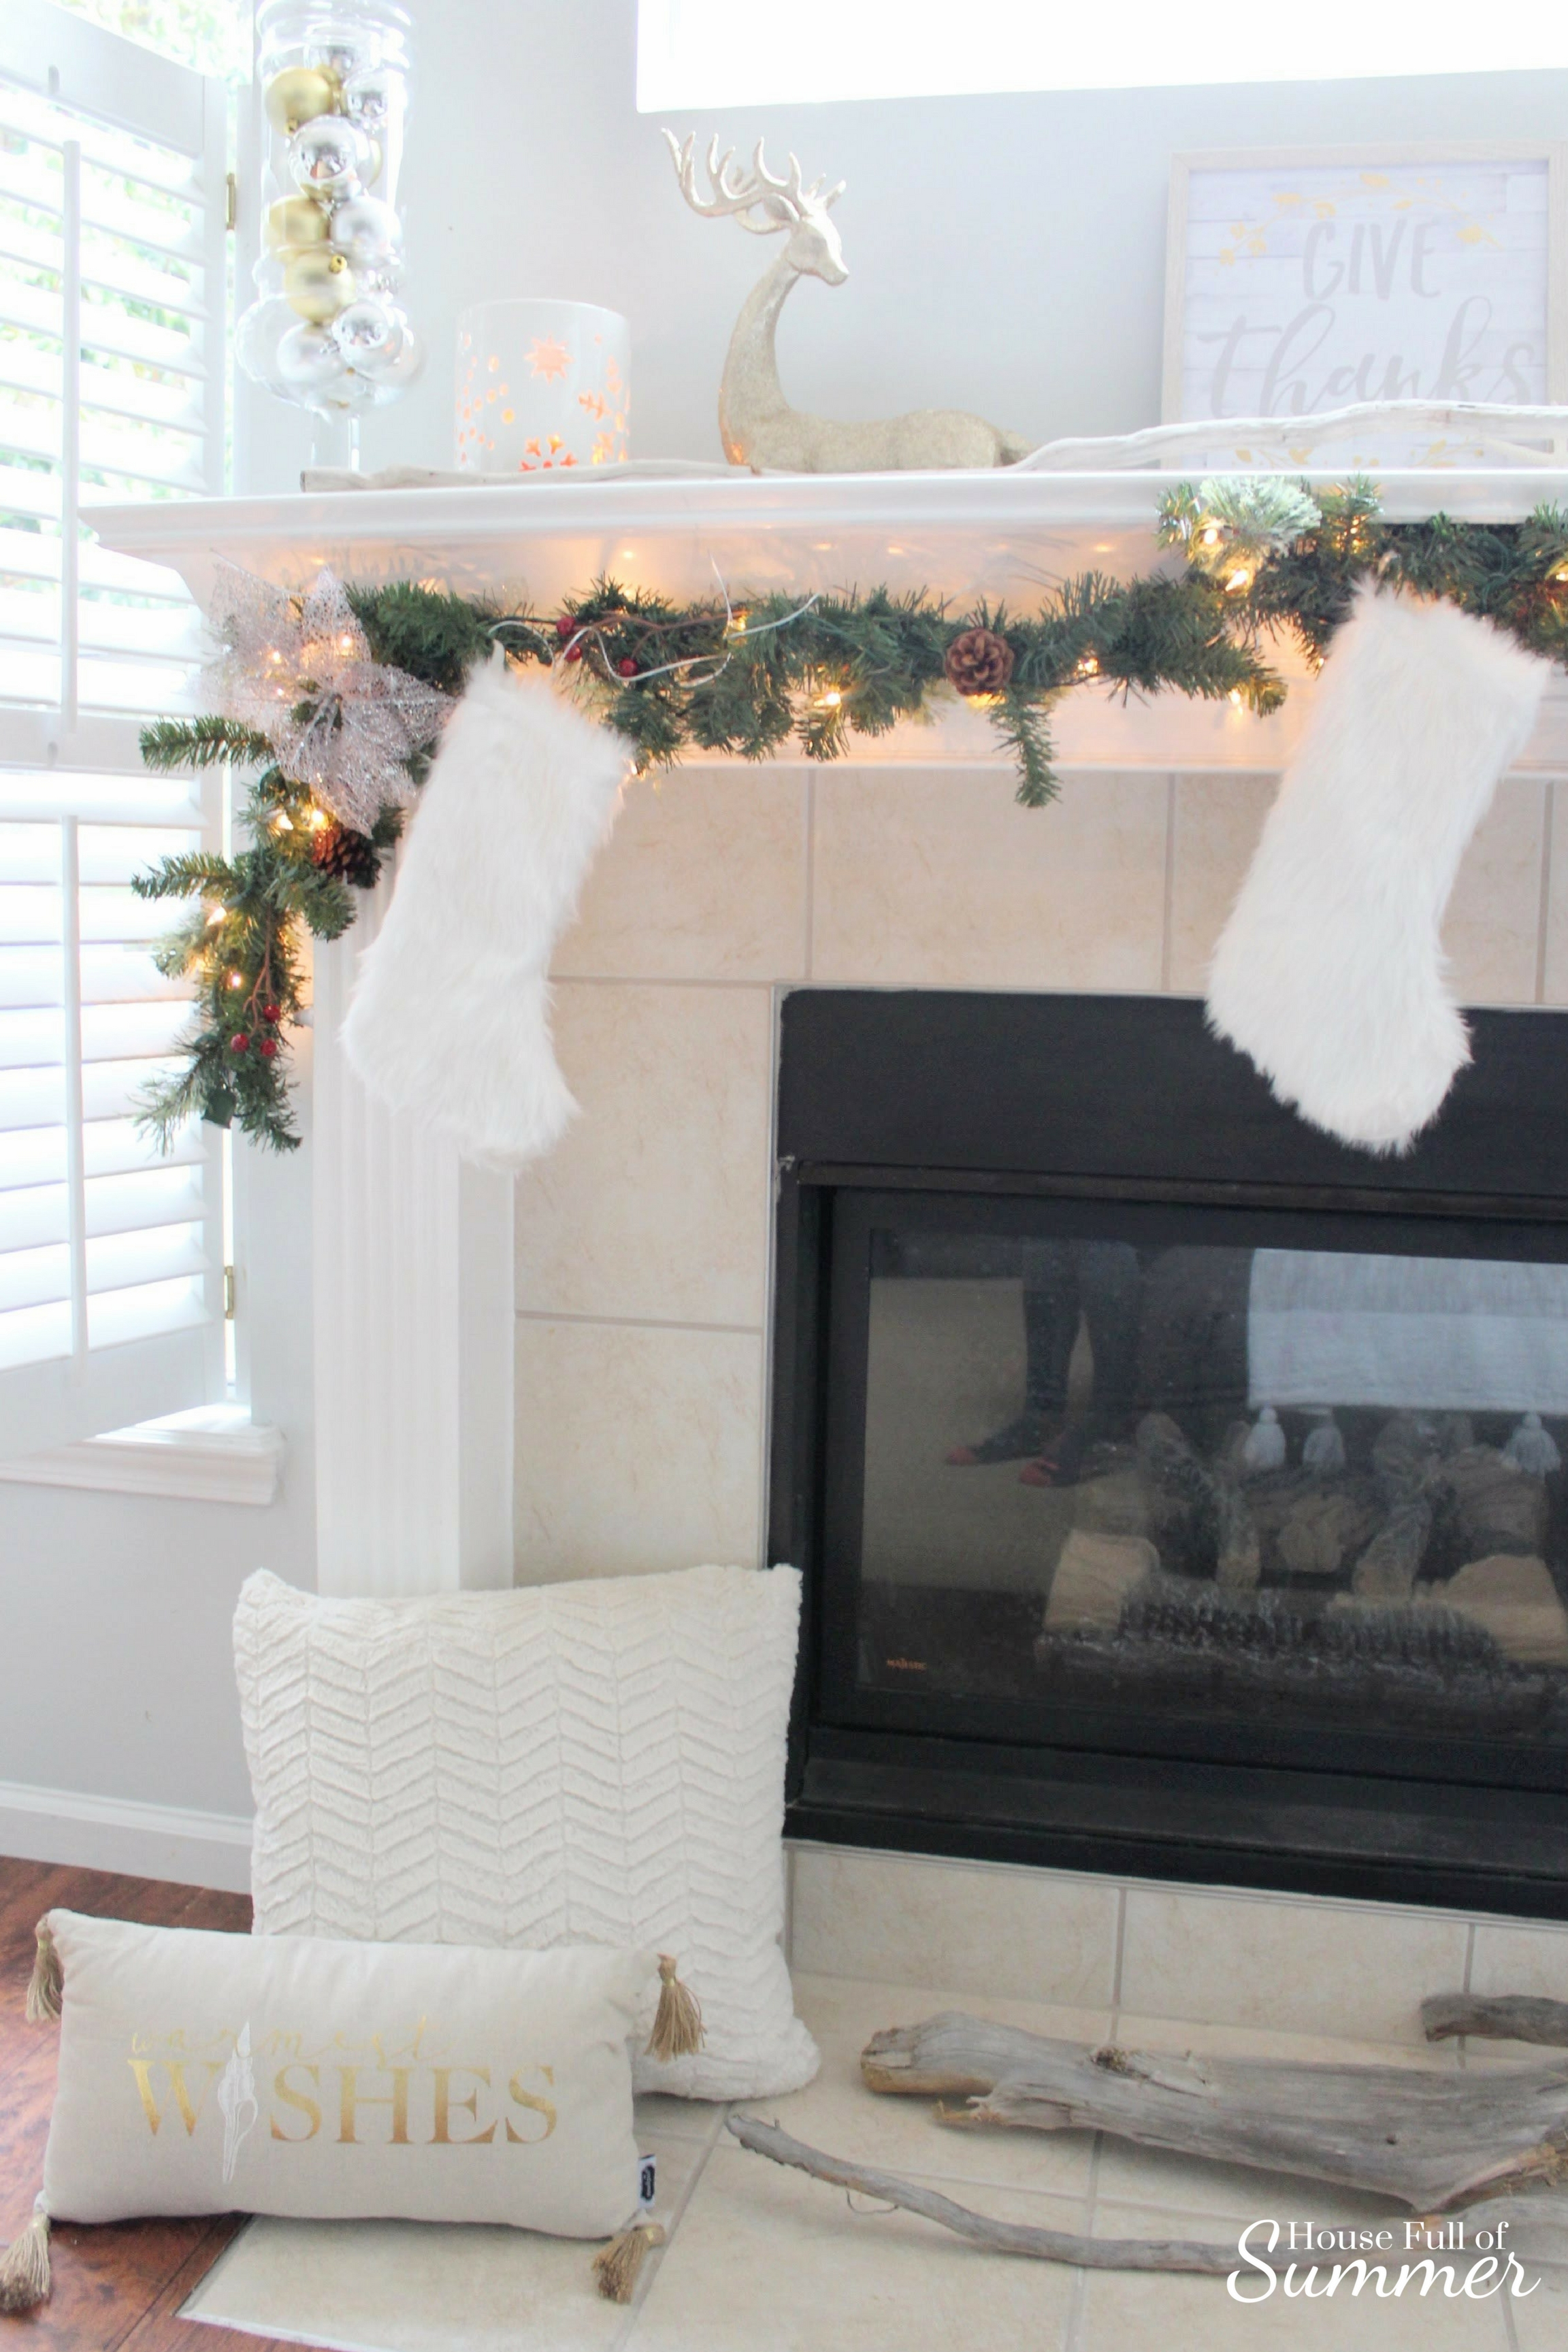 Creating a Glam Coastal Christmas with Bealls Florida | House Full of Summer blog - neutral christmas decor, gold coastal christmas throw pillow, tassel pillow, decorative pillow, florida christmas, beachy holiday decor, mantel decor, gold reindeer, garland, fur stockings, garland, silver and gold